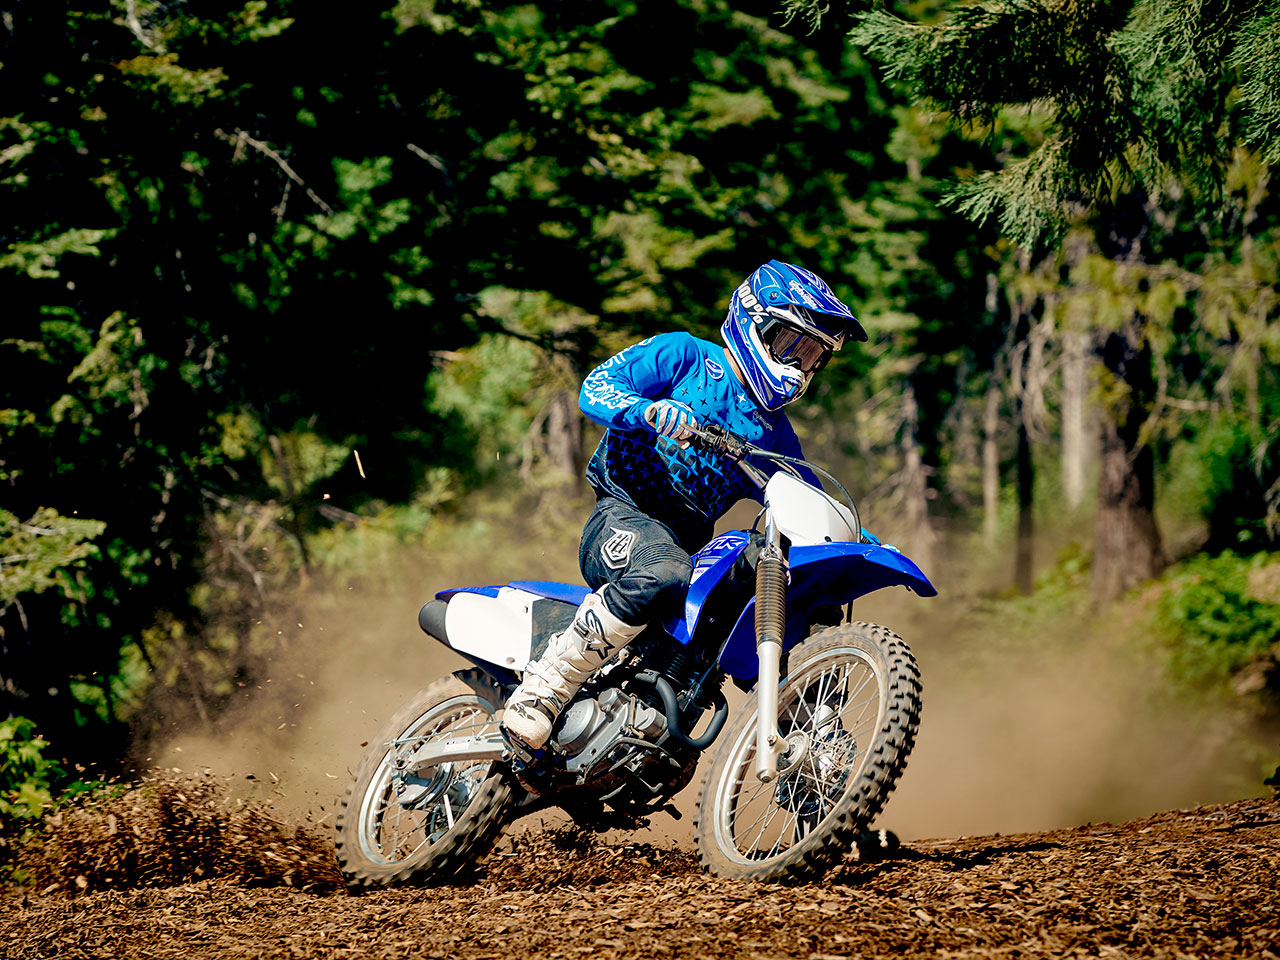 Yamaha TT-R230 in Team Yamaha Blue and White colour, being ridden off-track